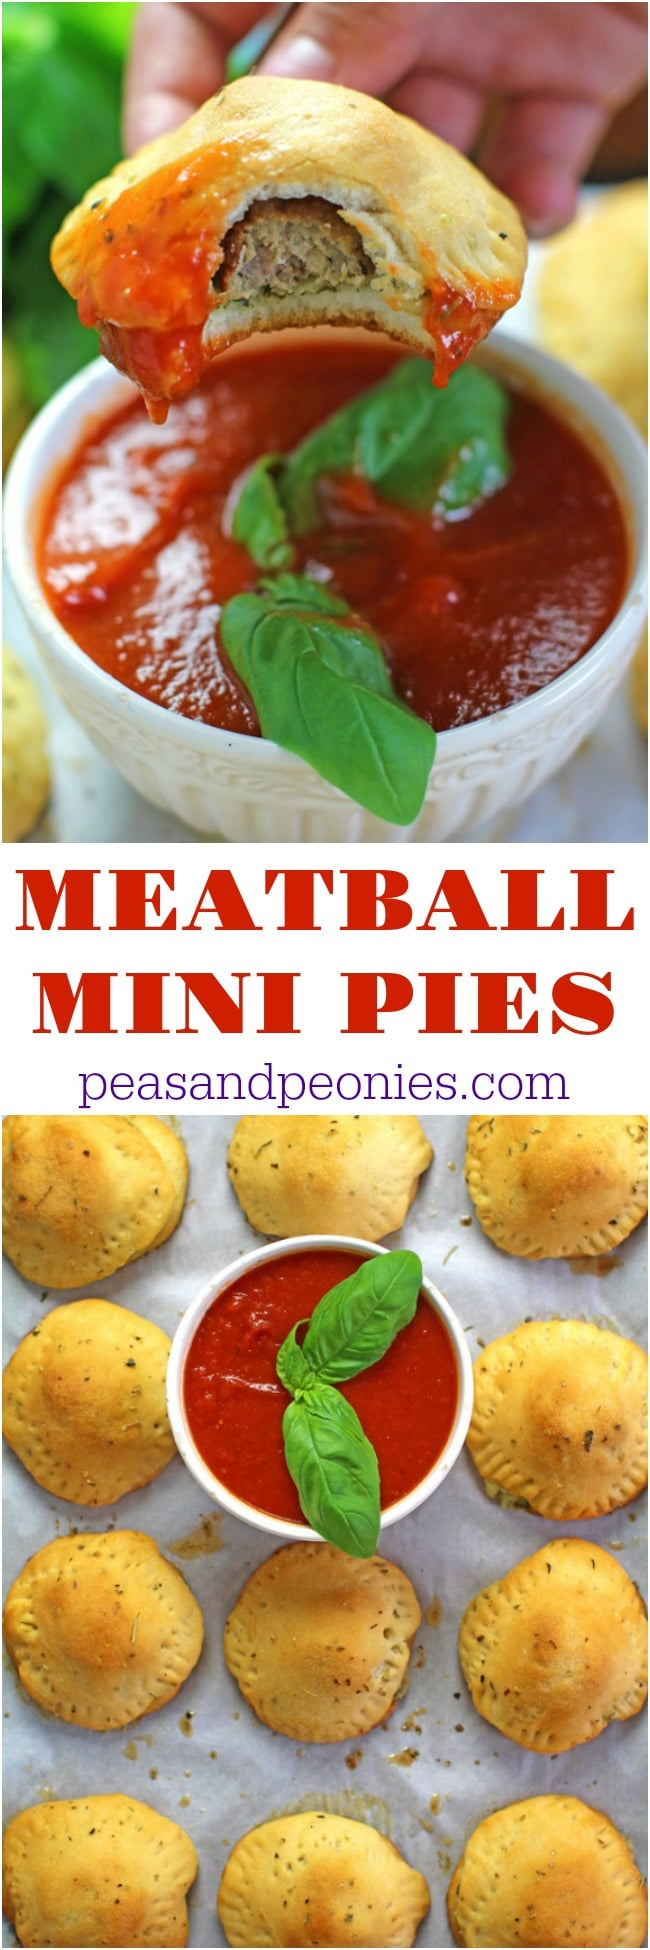 MINI MEATBALL PIES ARE THE PERFECT PARTY APPETIZER OR FUN DINNER. INCREDIBLY EASY TO MAKE, THESE ARE READY IN 30 MINUTES AND PERFECT FOR BUSY FAMILIES.